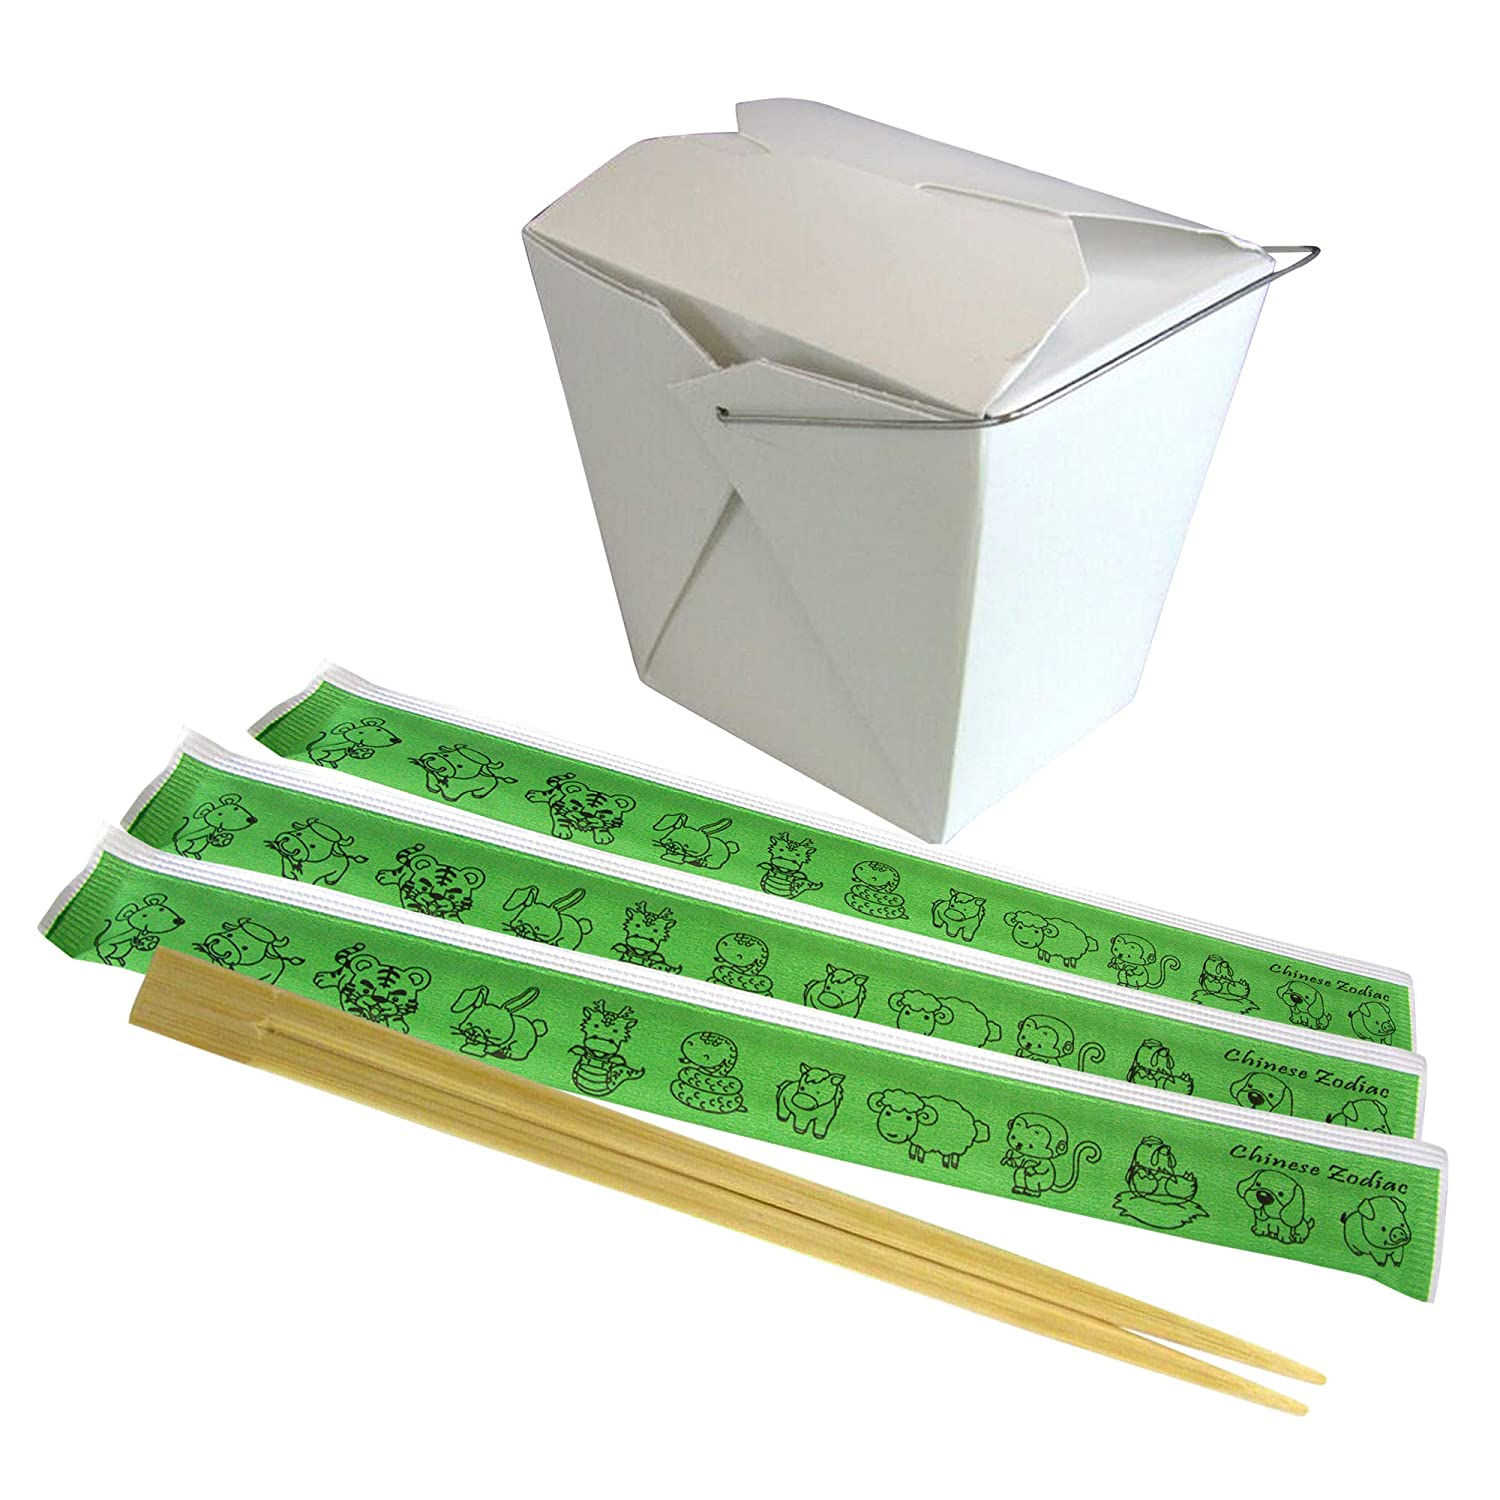 [50 Each] Chinese Take Out Box 16 oz and Wooden Chopsticks with Animal Zodiac Wrapper 9 Inches - Plain White Grease Resistant Food Paper Container and Premium Disposable Bamboo Sticks for Asian Food